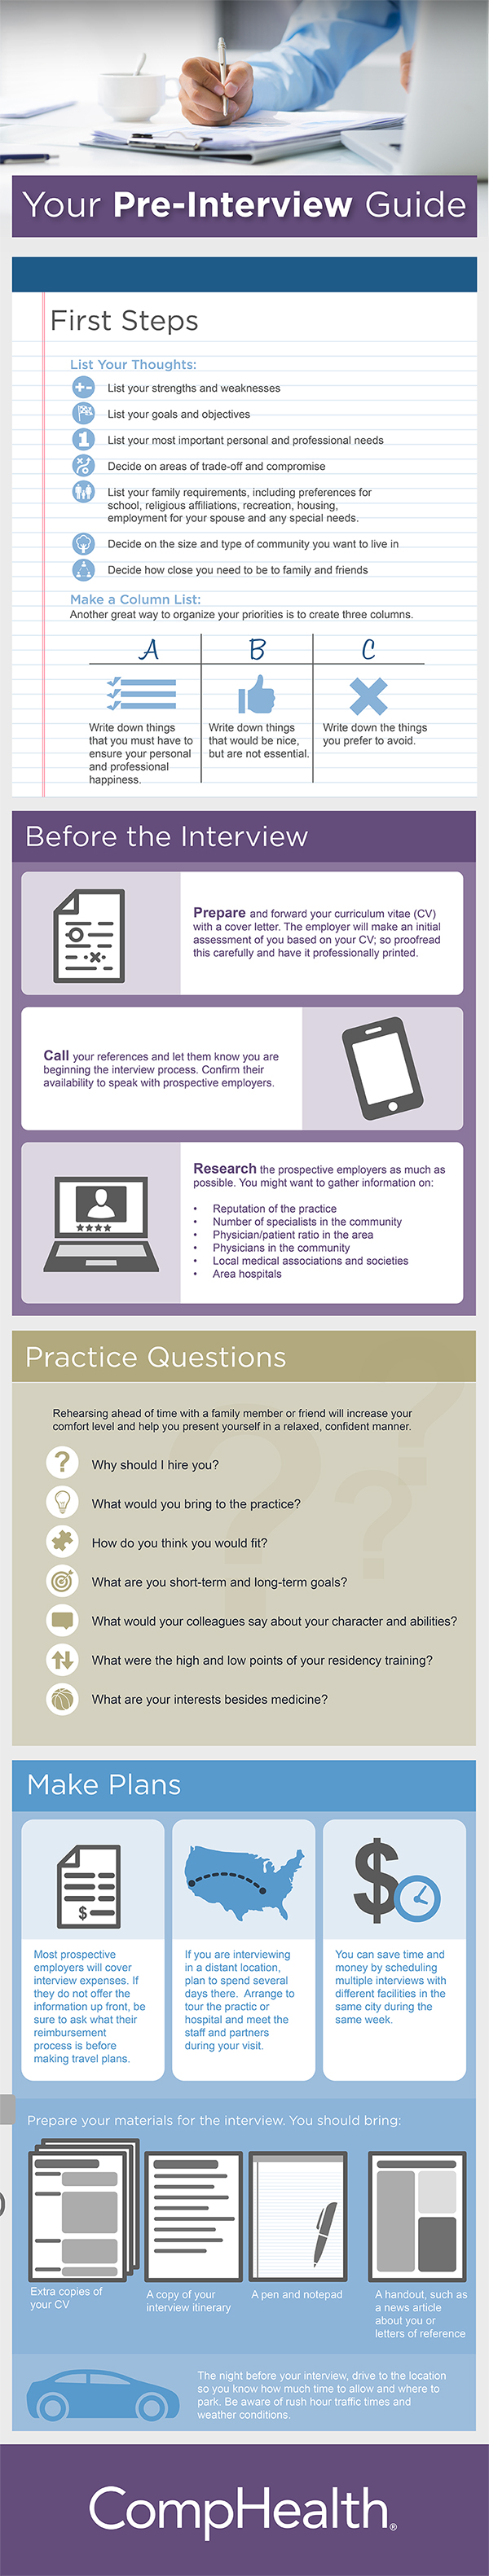 PreInterview_infographic